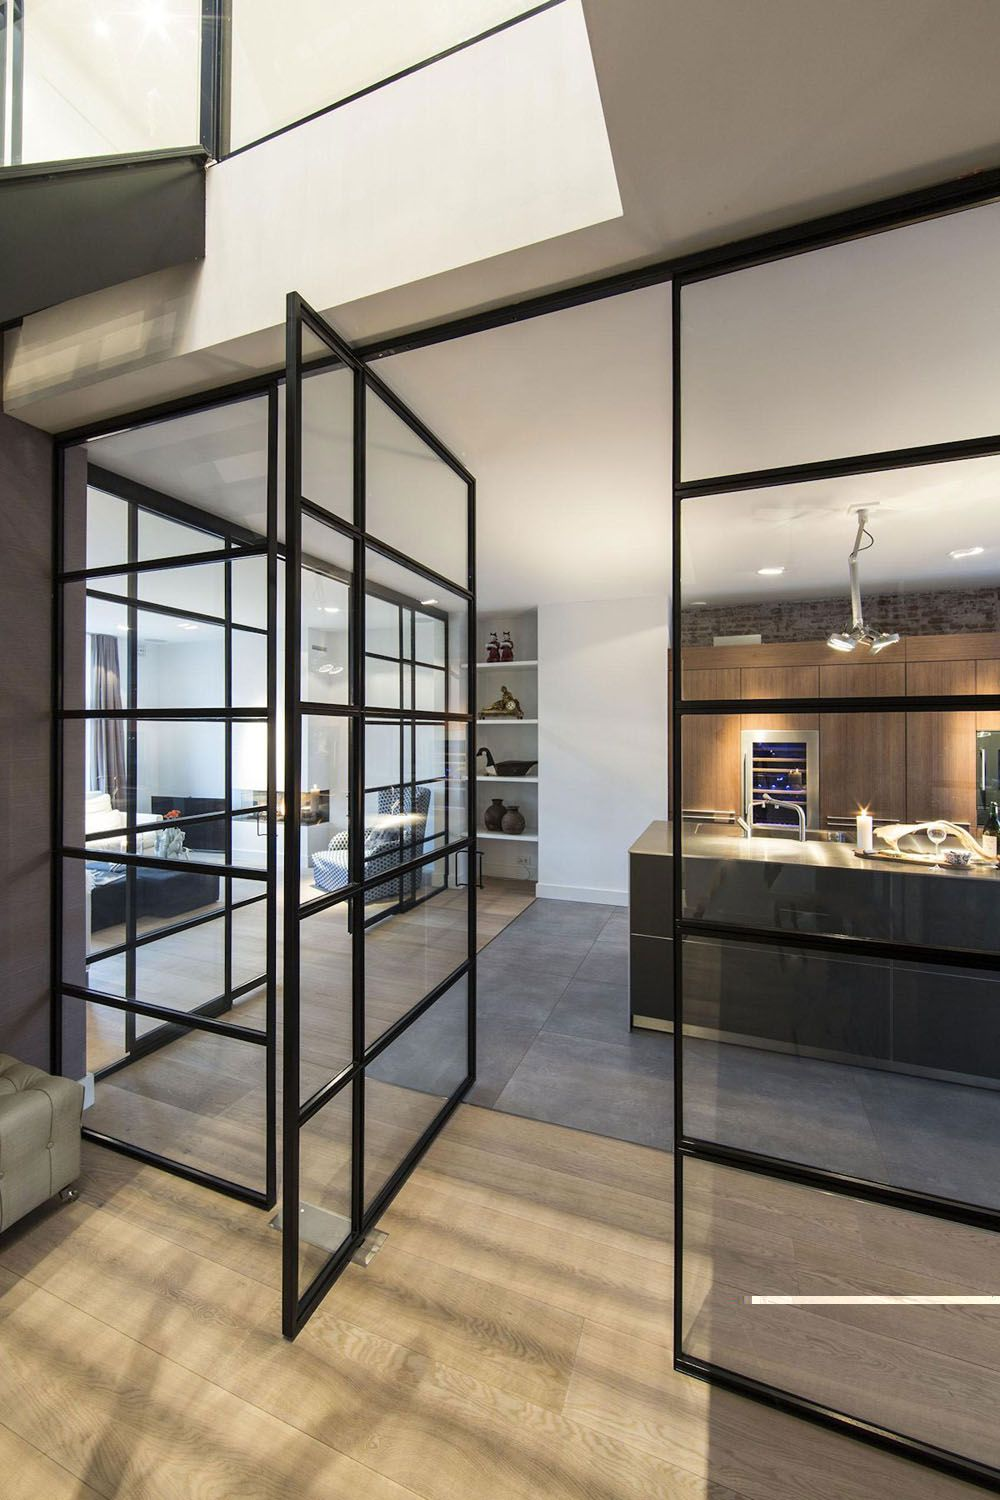 amsterdam flaunting permanent visual connection between spaces amusing of interior design of kitchen with glass door in black steel frame also flooring